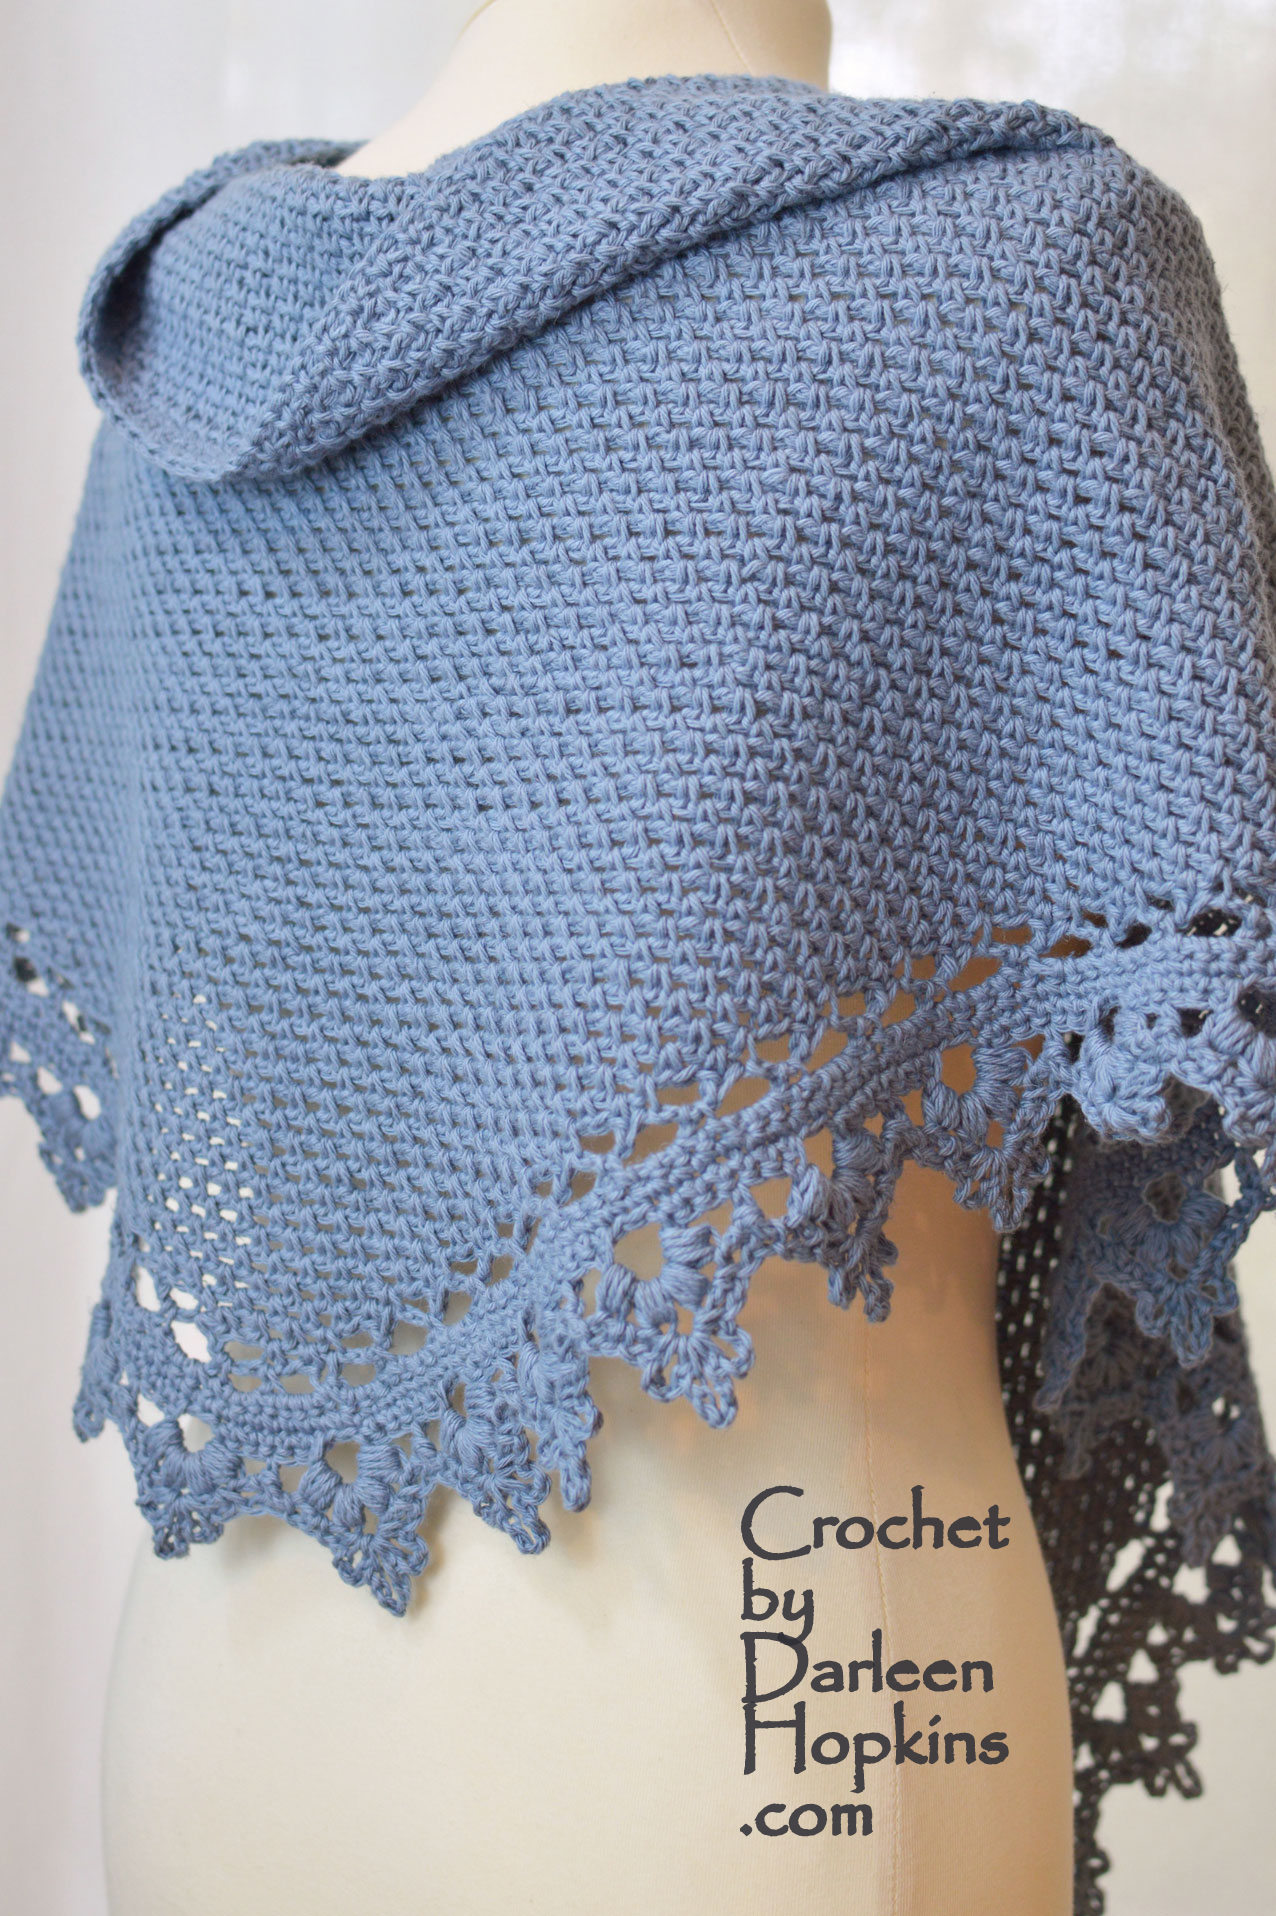 Crochet And Knitting And Football And Basketball Crochet By